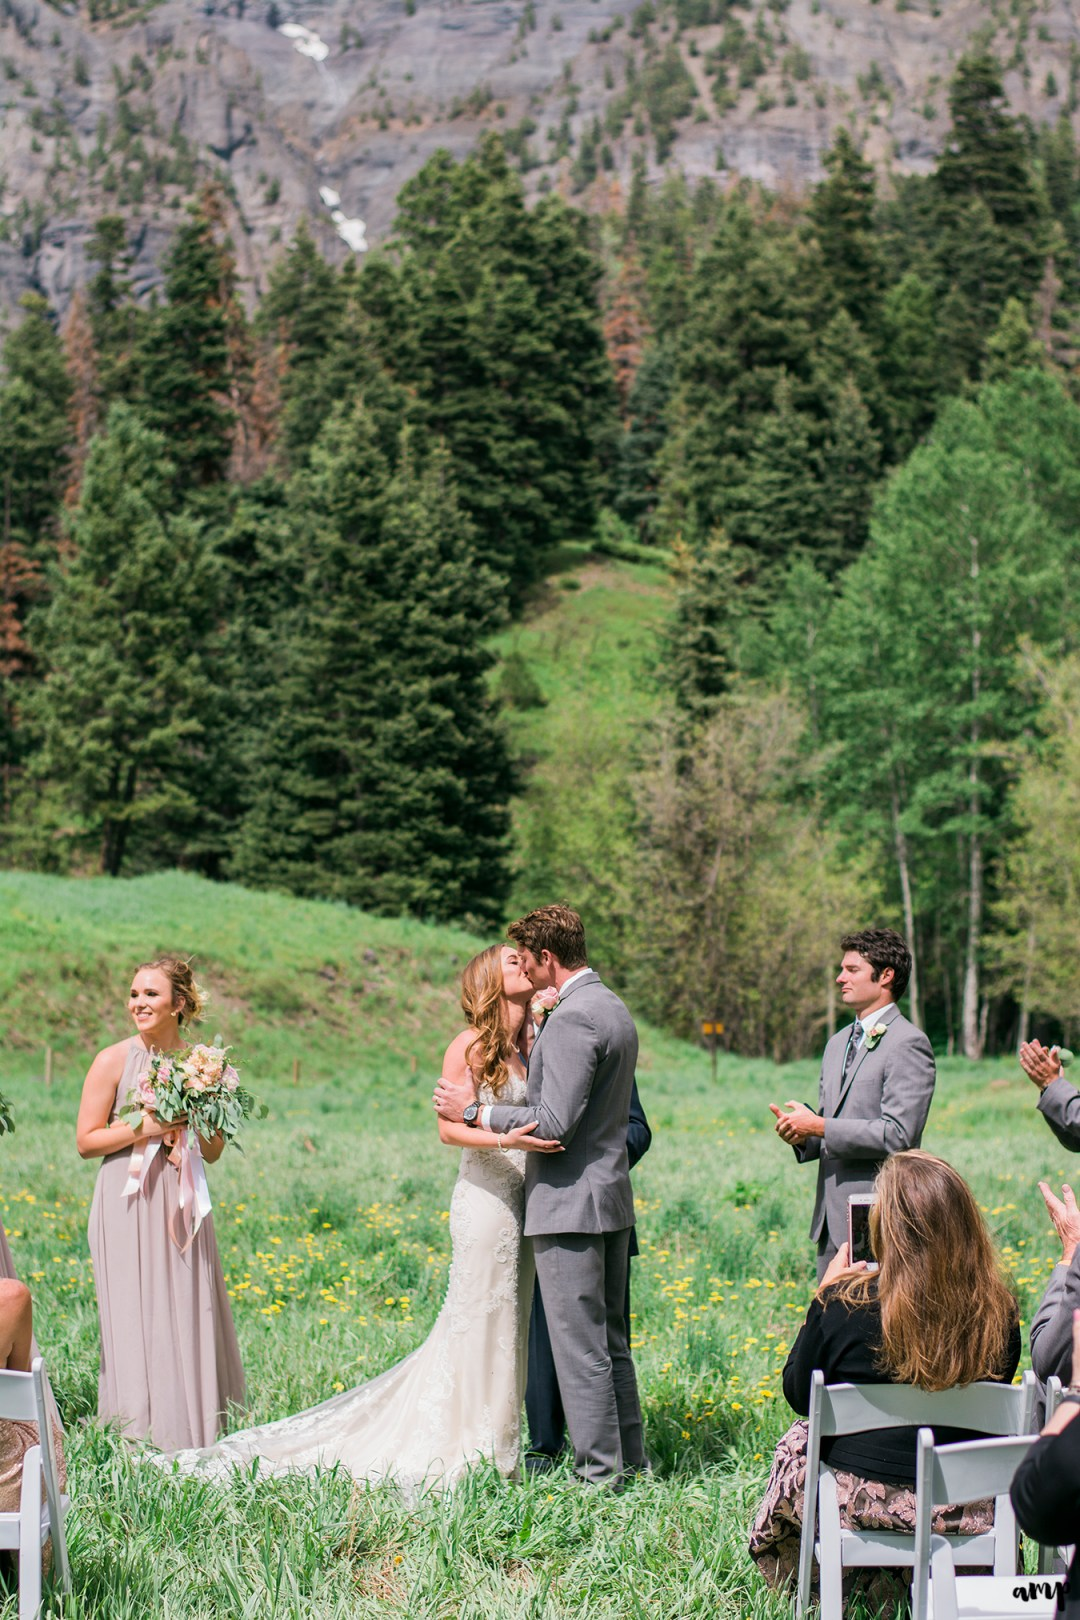 Bride and Groom's first kiss at the Ouray Amphitheater